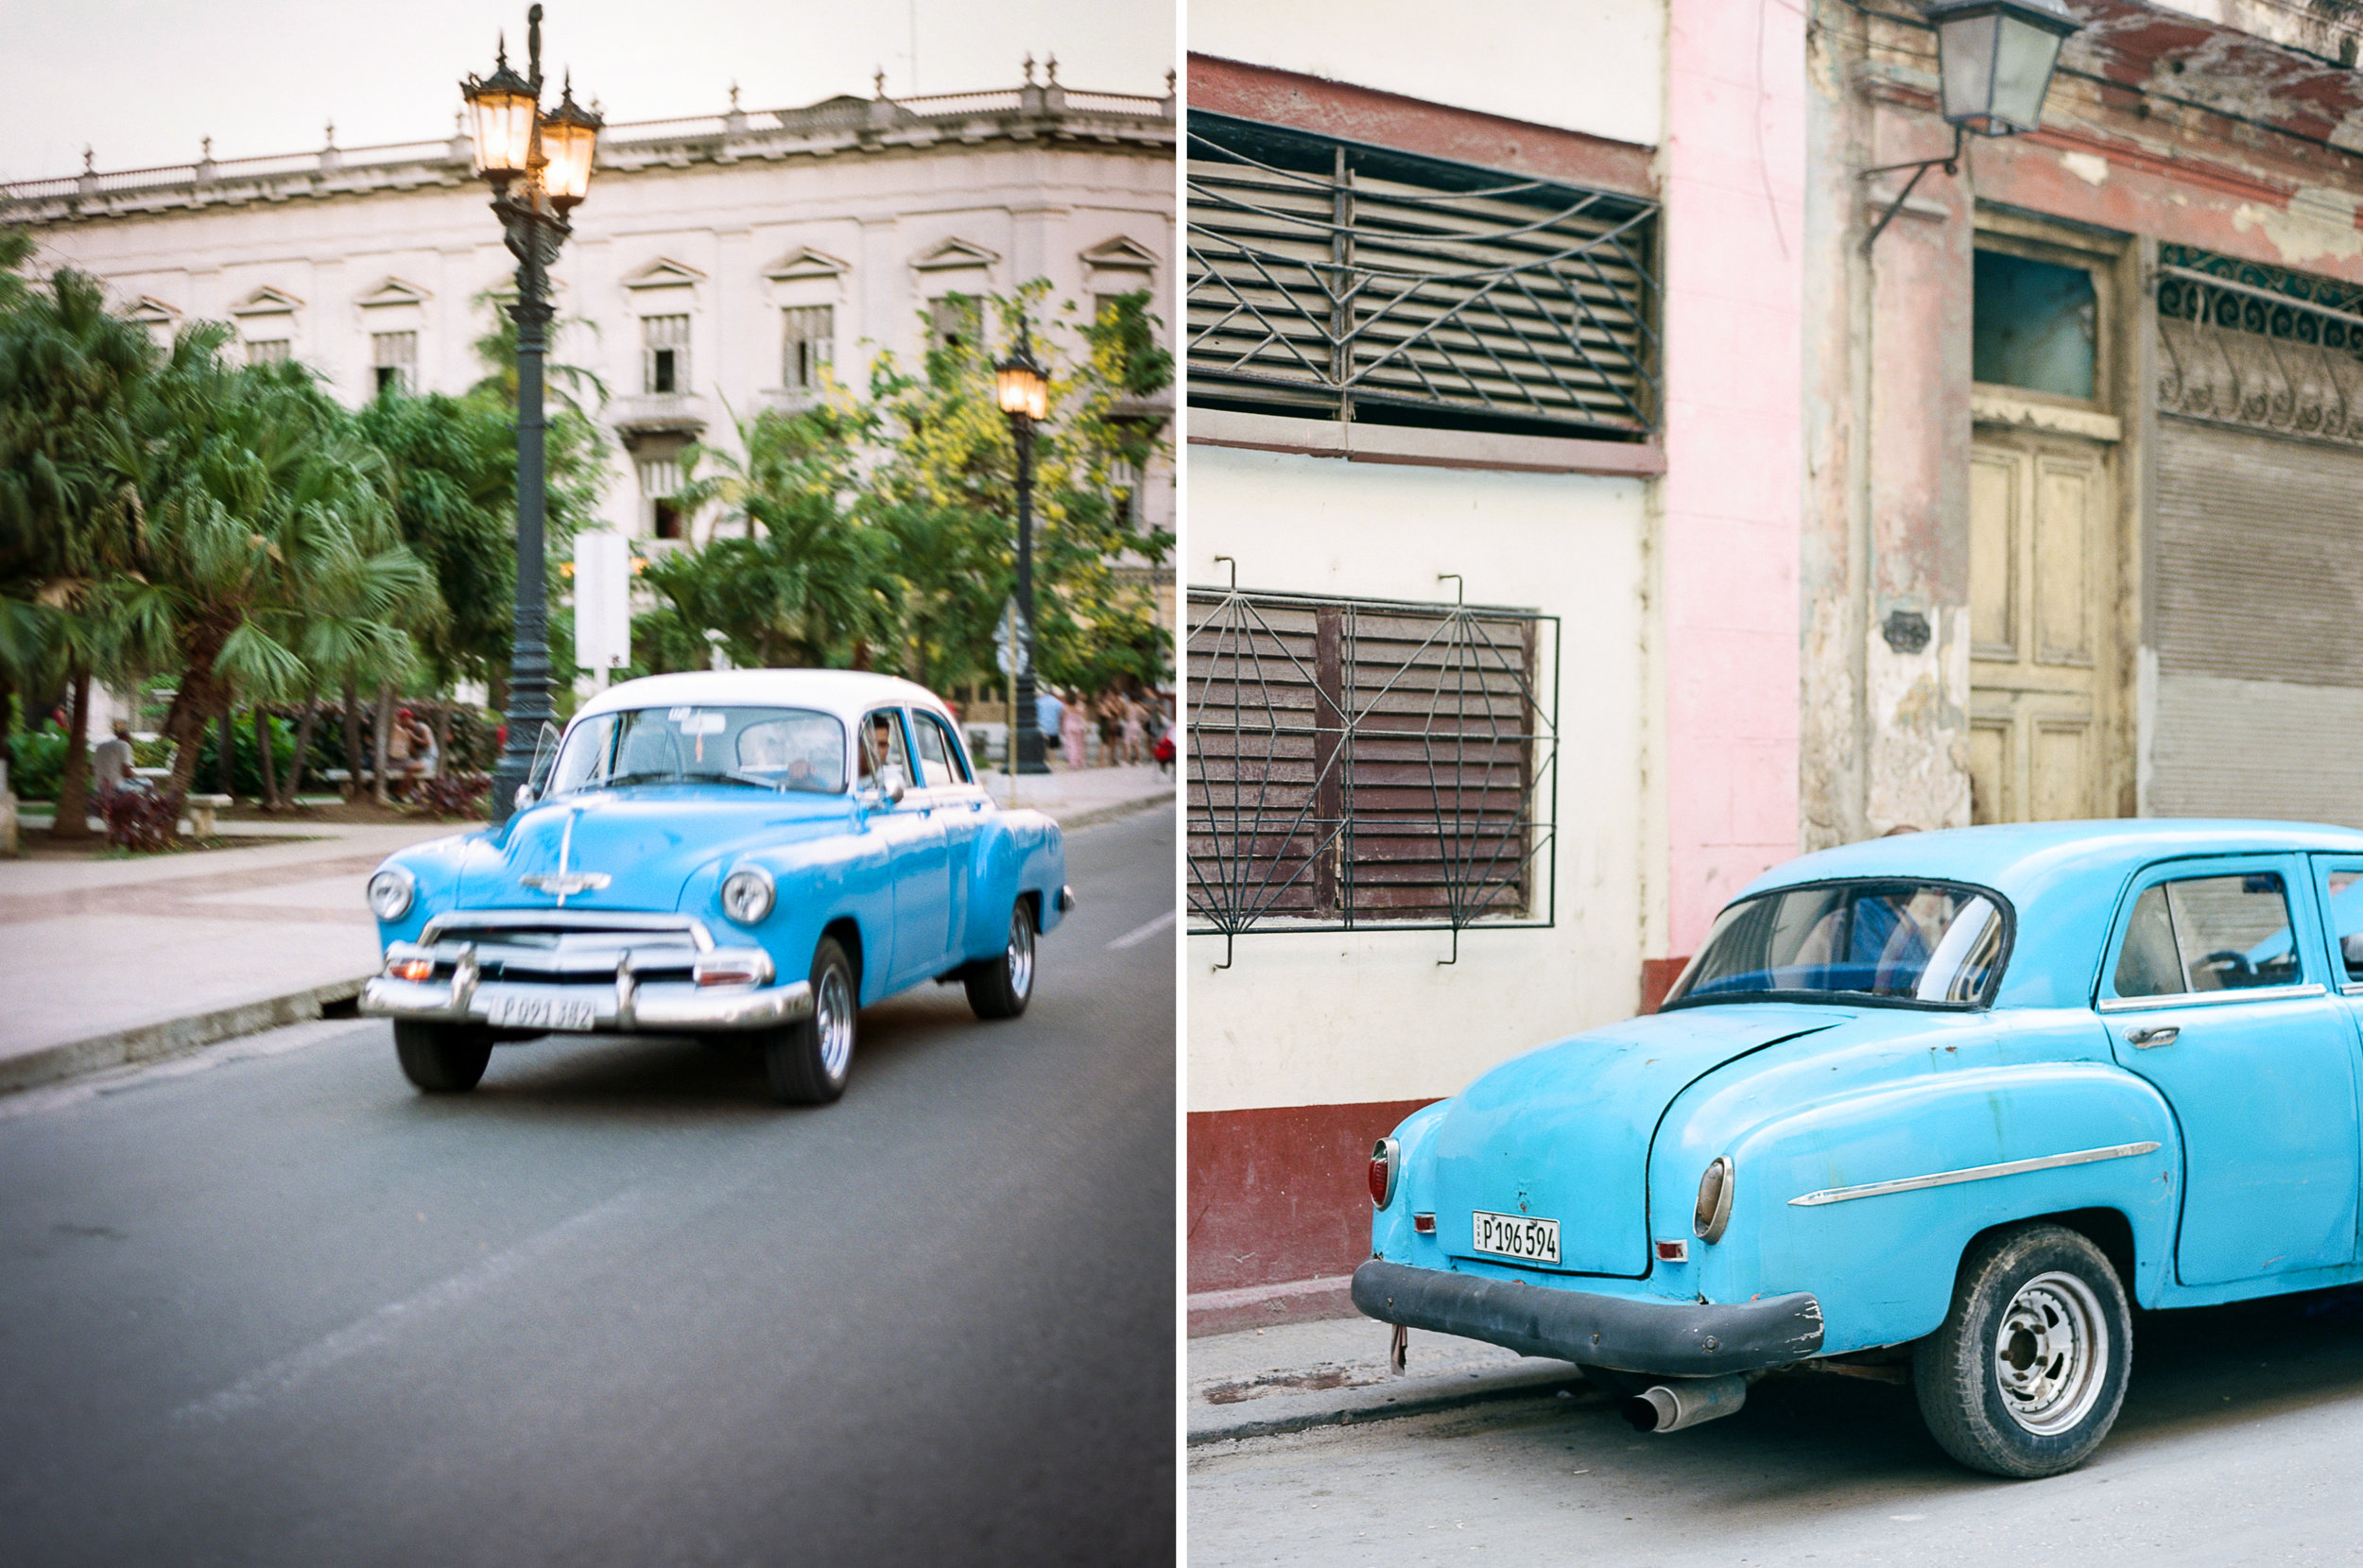 Cuba-Travel-photography-rachael-mcitnosh-photography-109.jpg